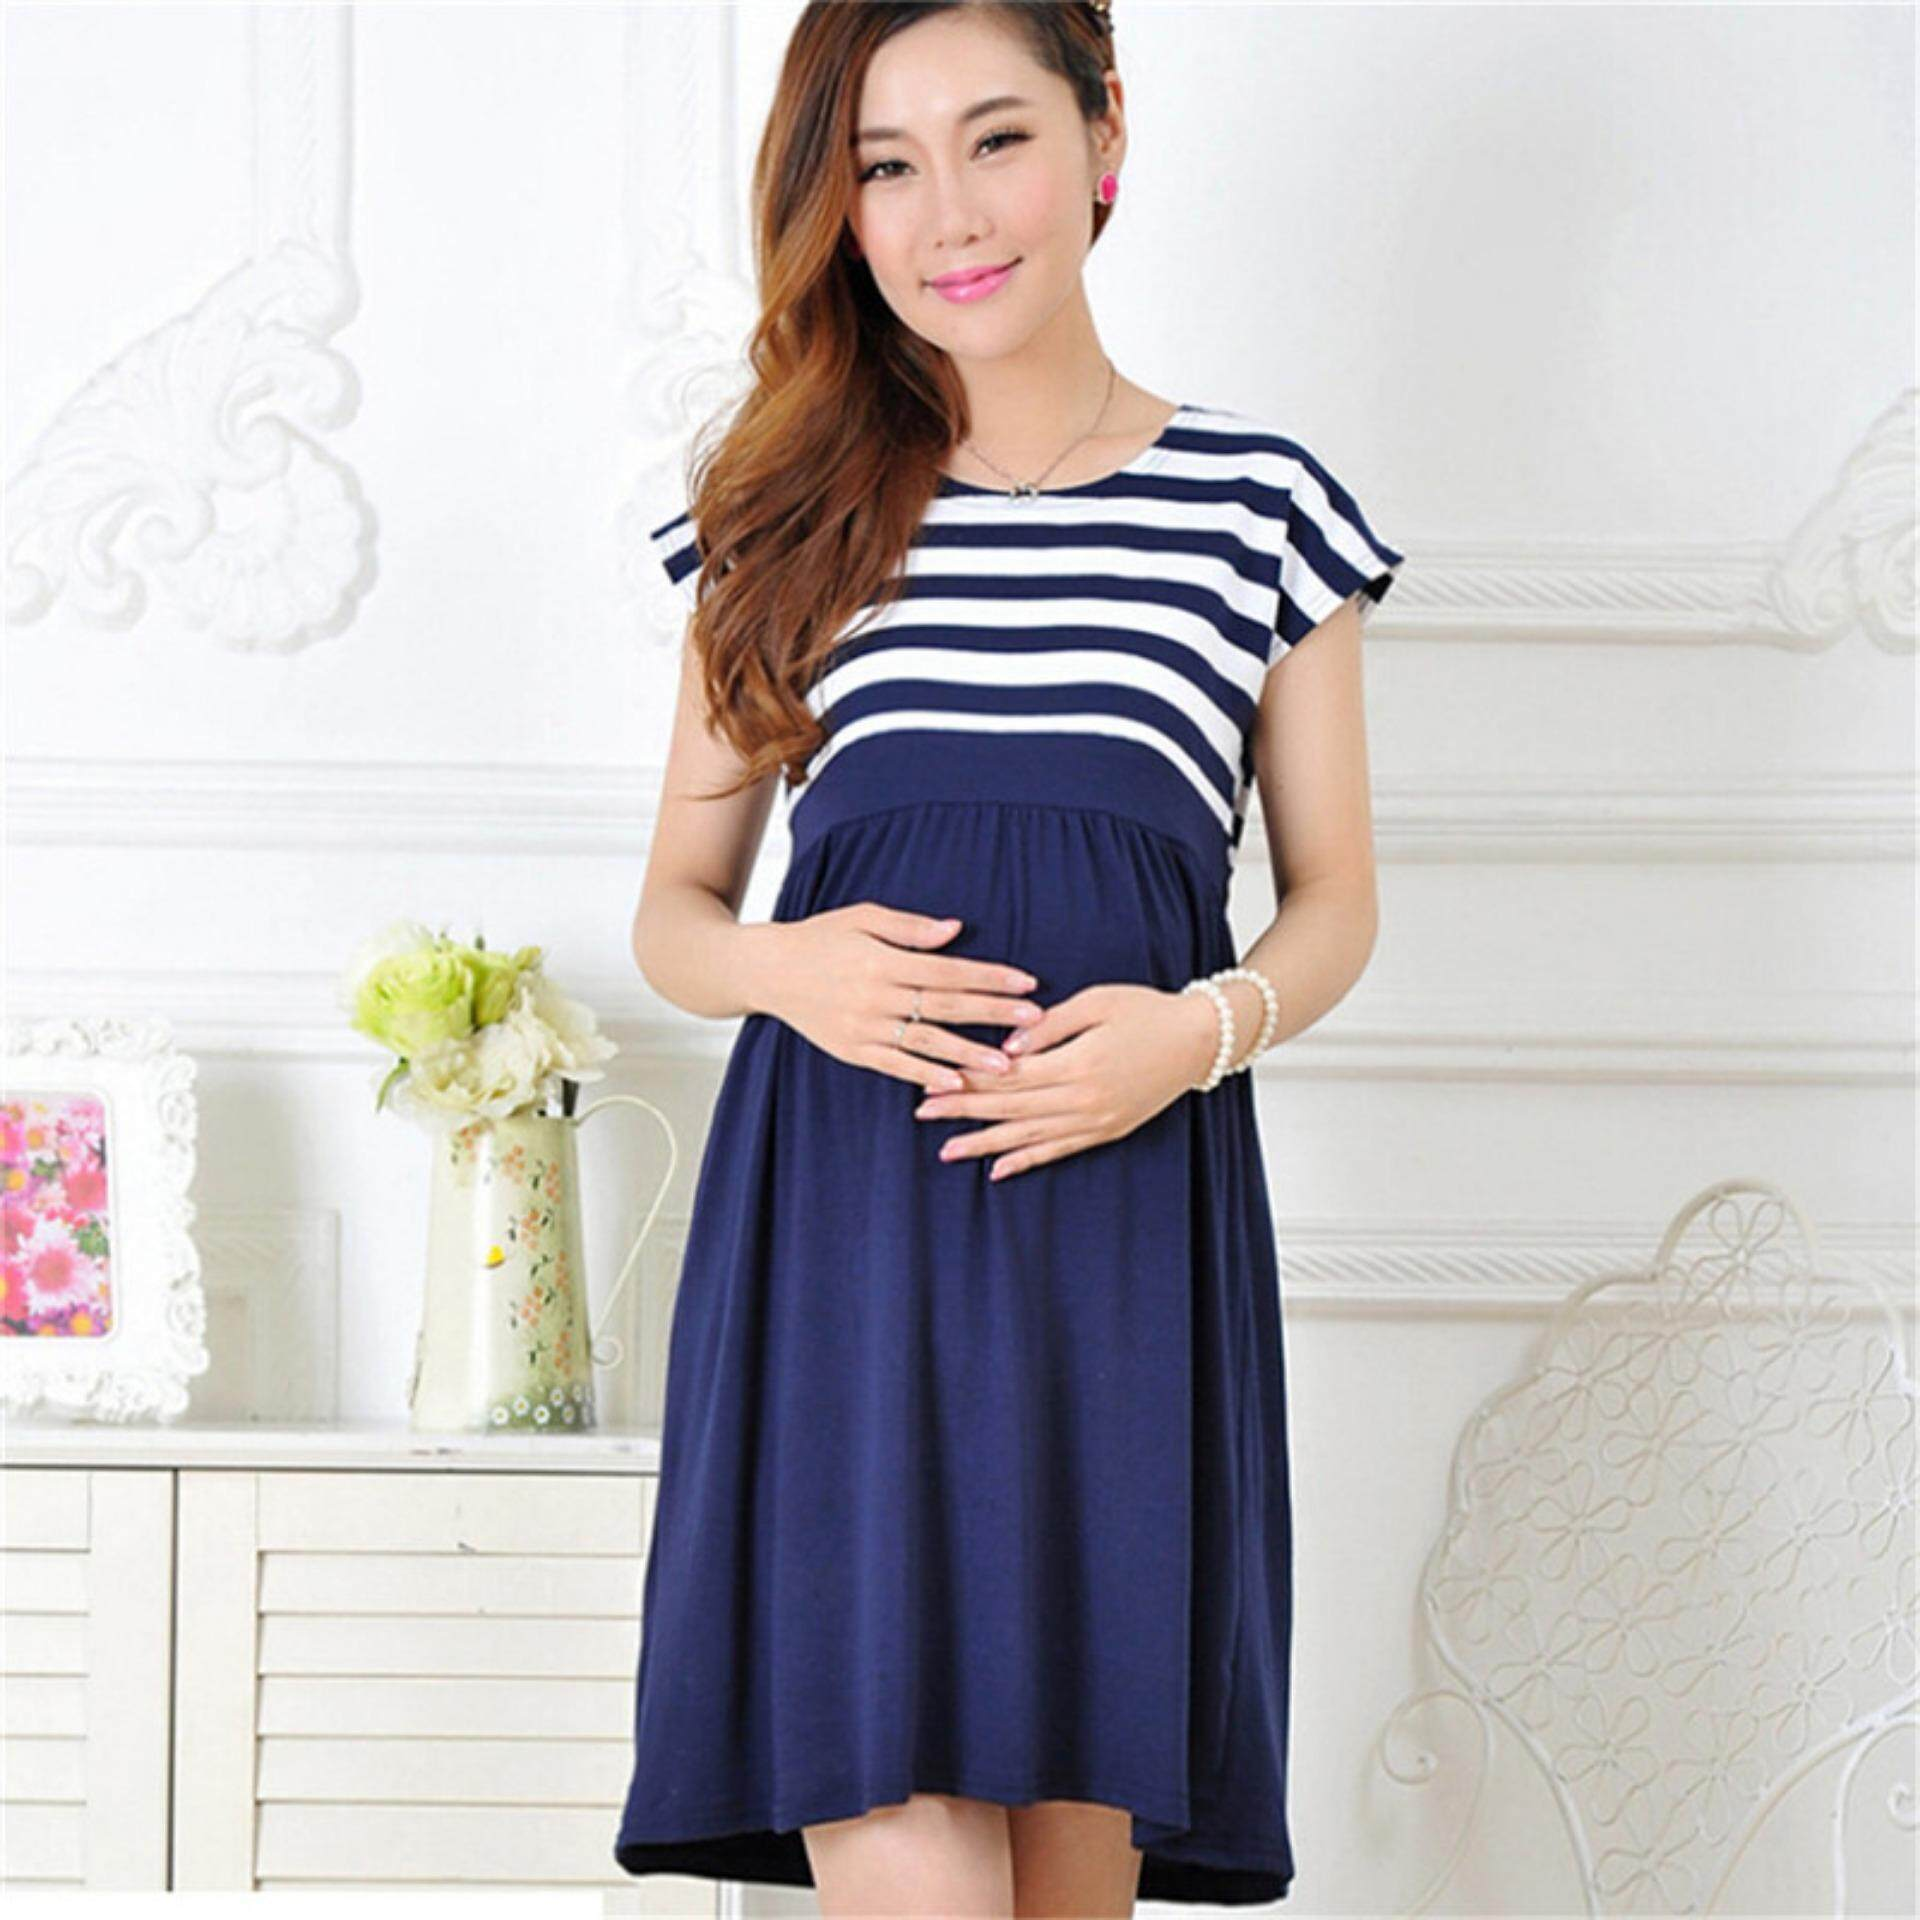 Stripe Pregnant Women Dress Short Sleeve Casual Maternity Dress Mother  Clothes Navy Blue Int XL a1635732c742